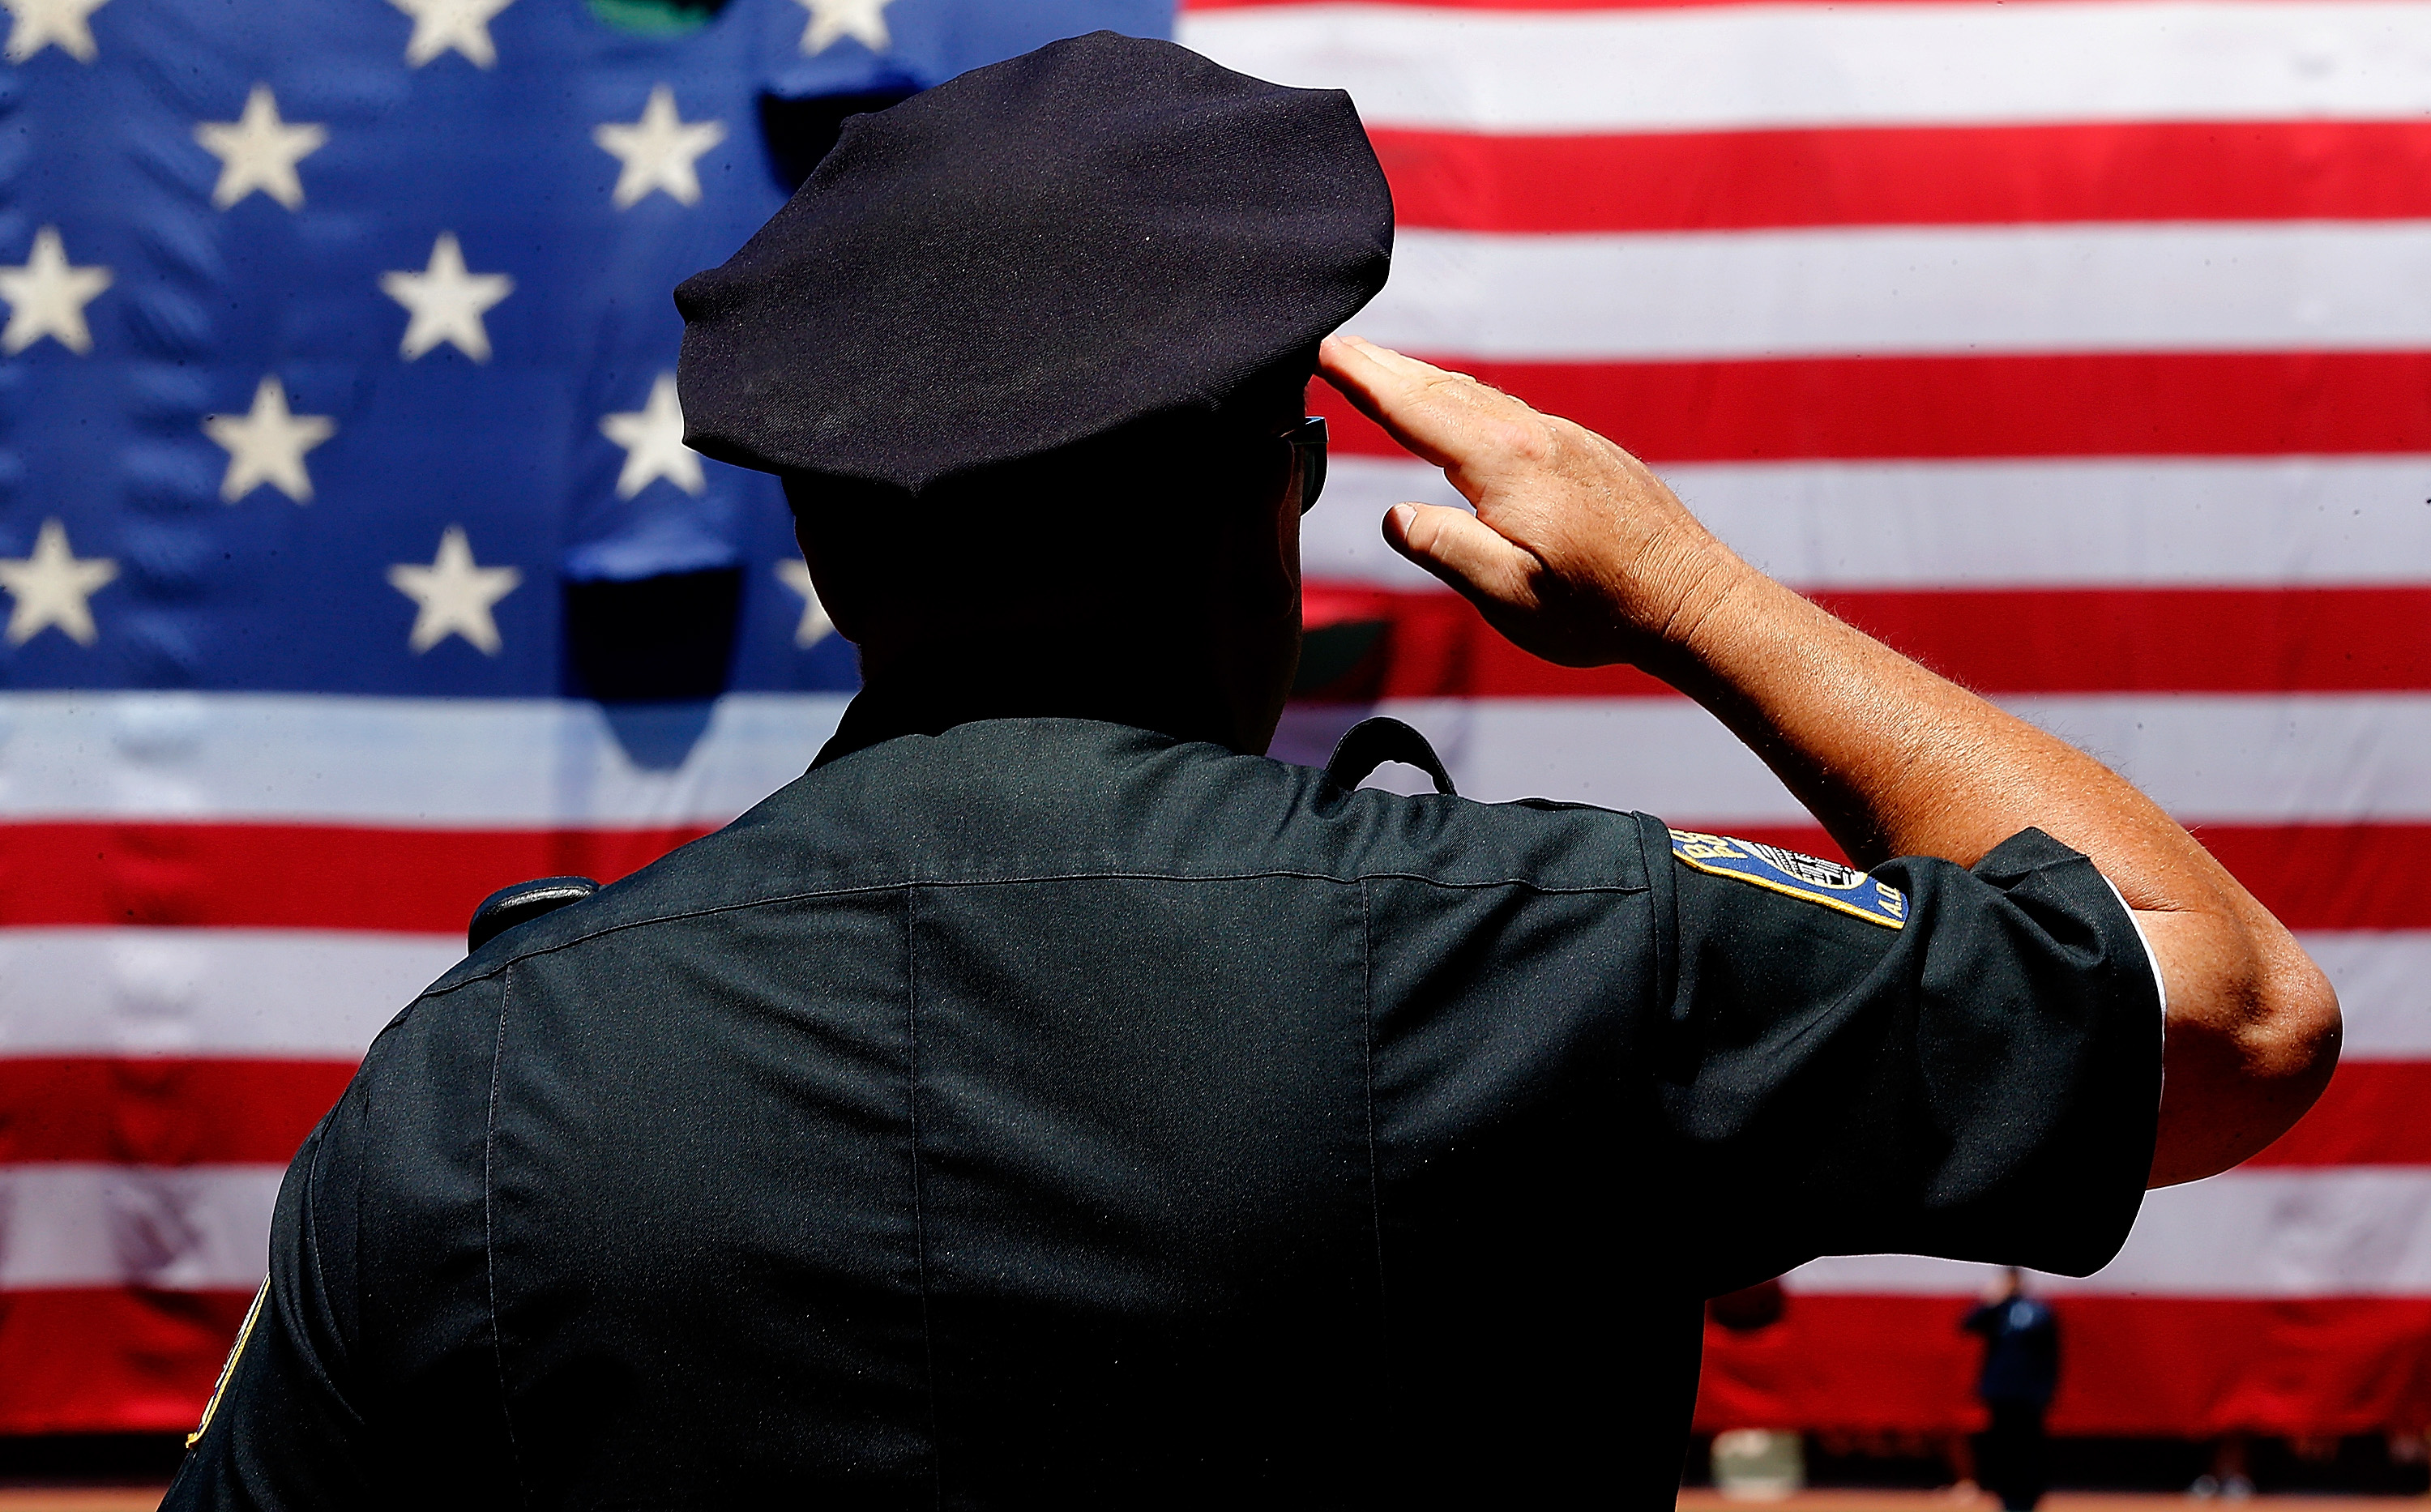 A police officer salutes during the National Anthem before the first game of a doubleheader between the Baltimore Orioles and the Boston Red Sox at Fenway Park on July 5, 2014 in Boston.